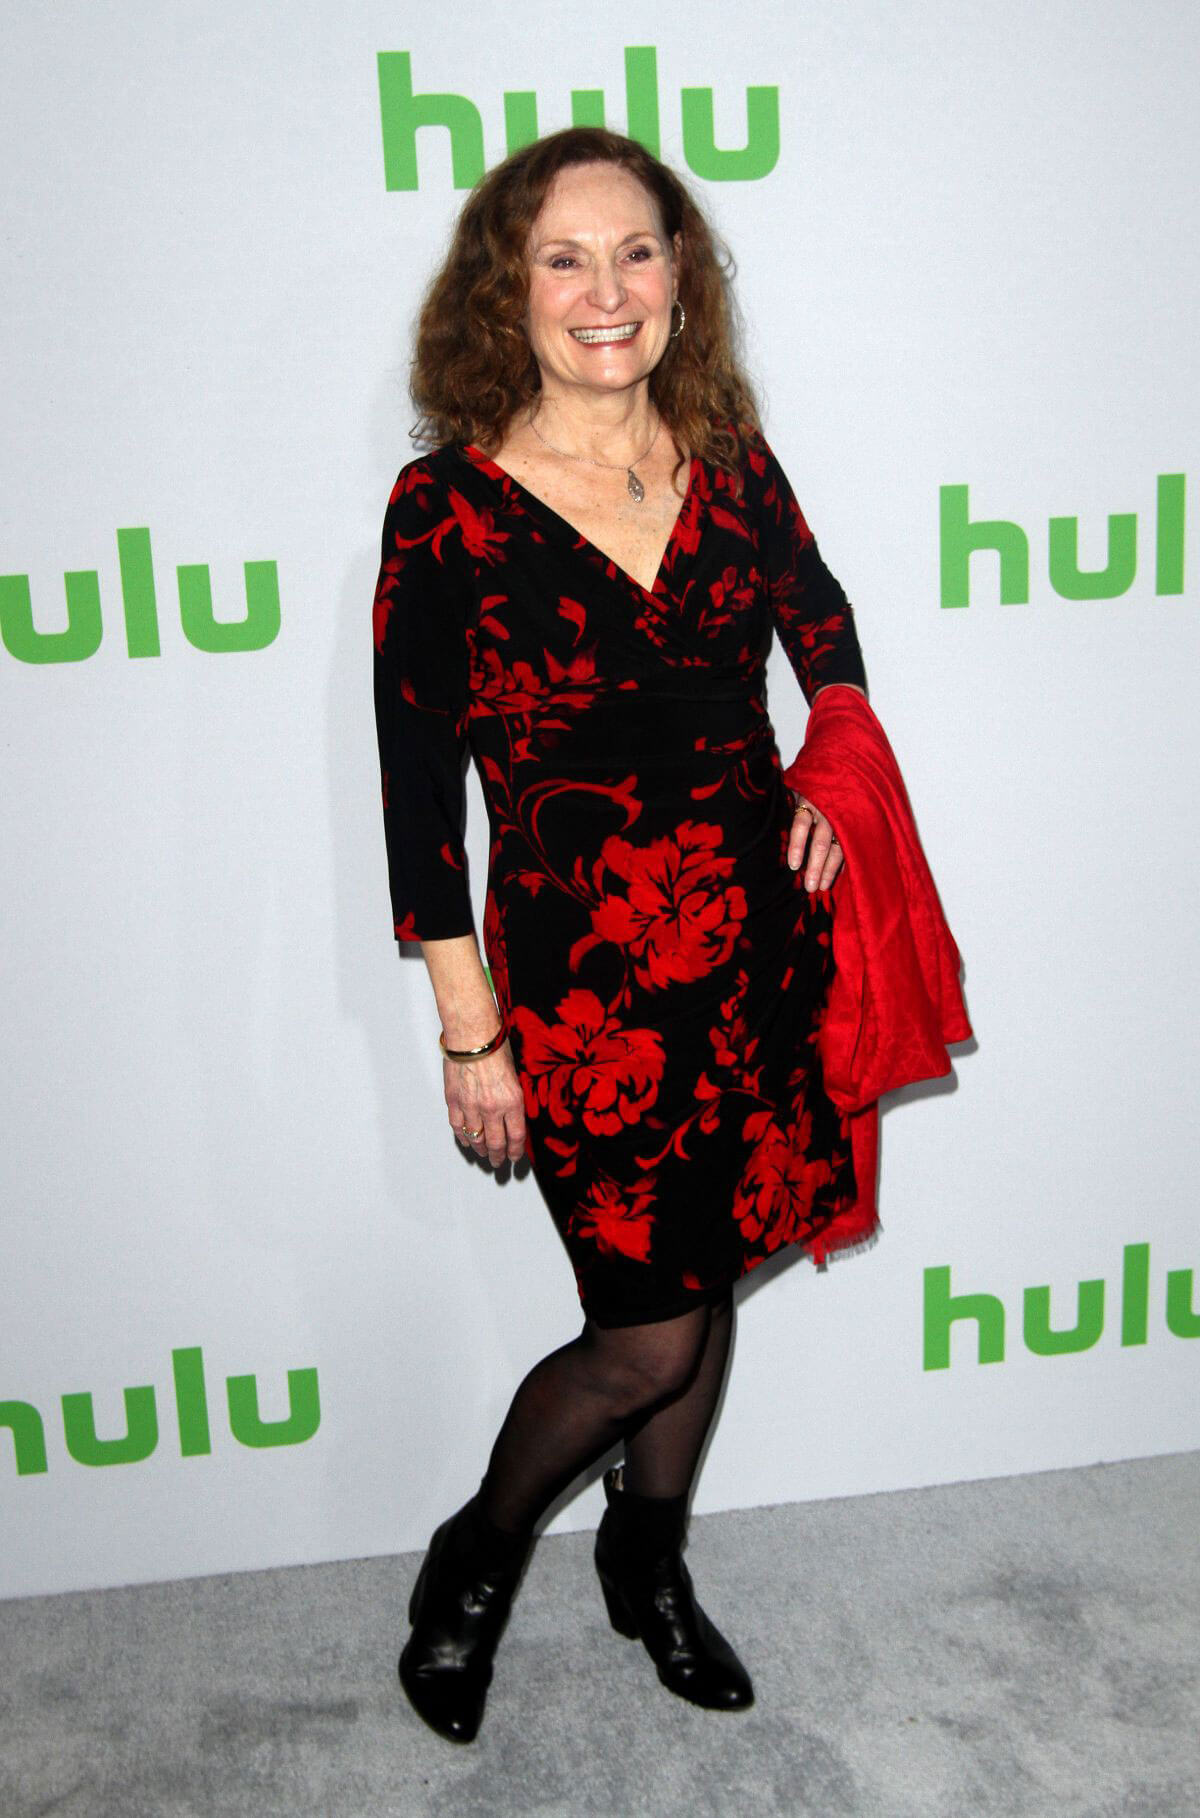 Beth Grant at Hulu's Winter TCA 2017 in Los Angeles